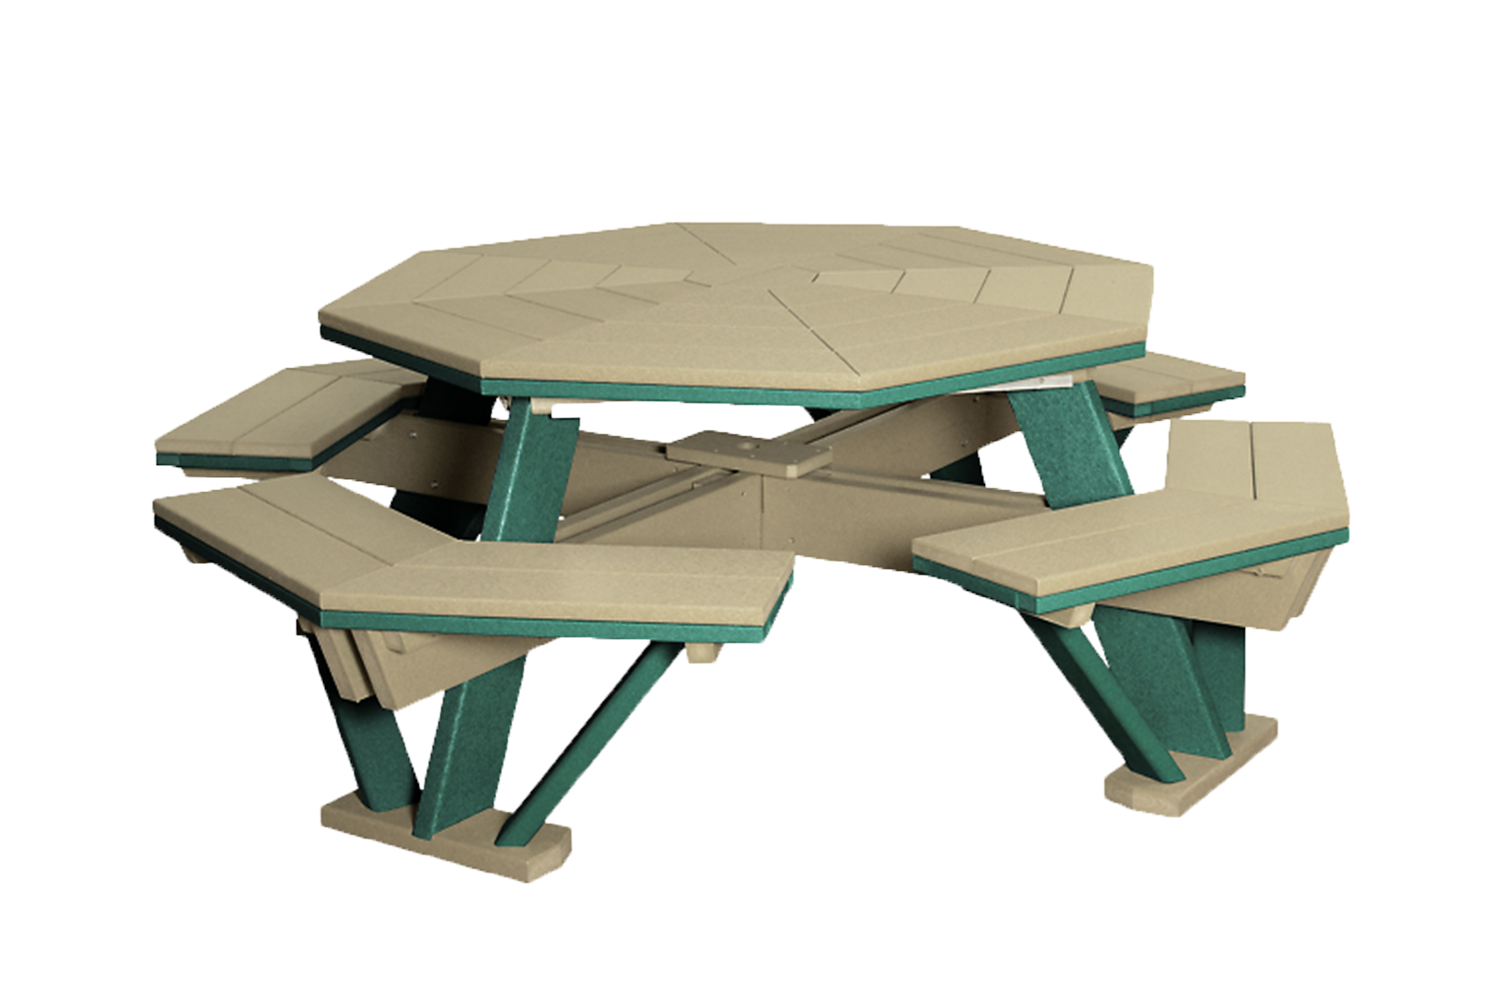 Poly 5' Octagonal Picnic Table with 8 attached Seats